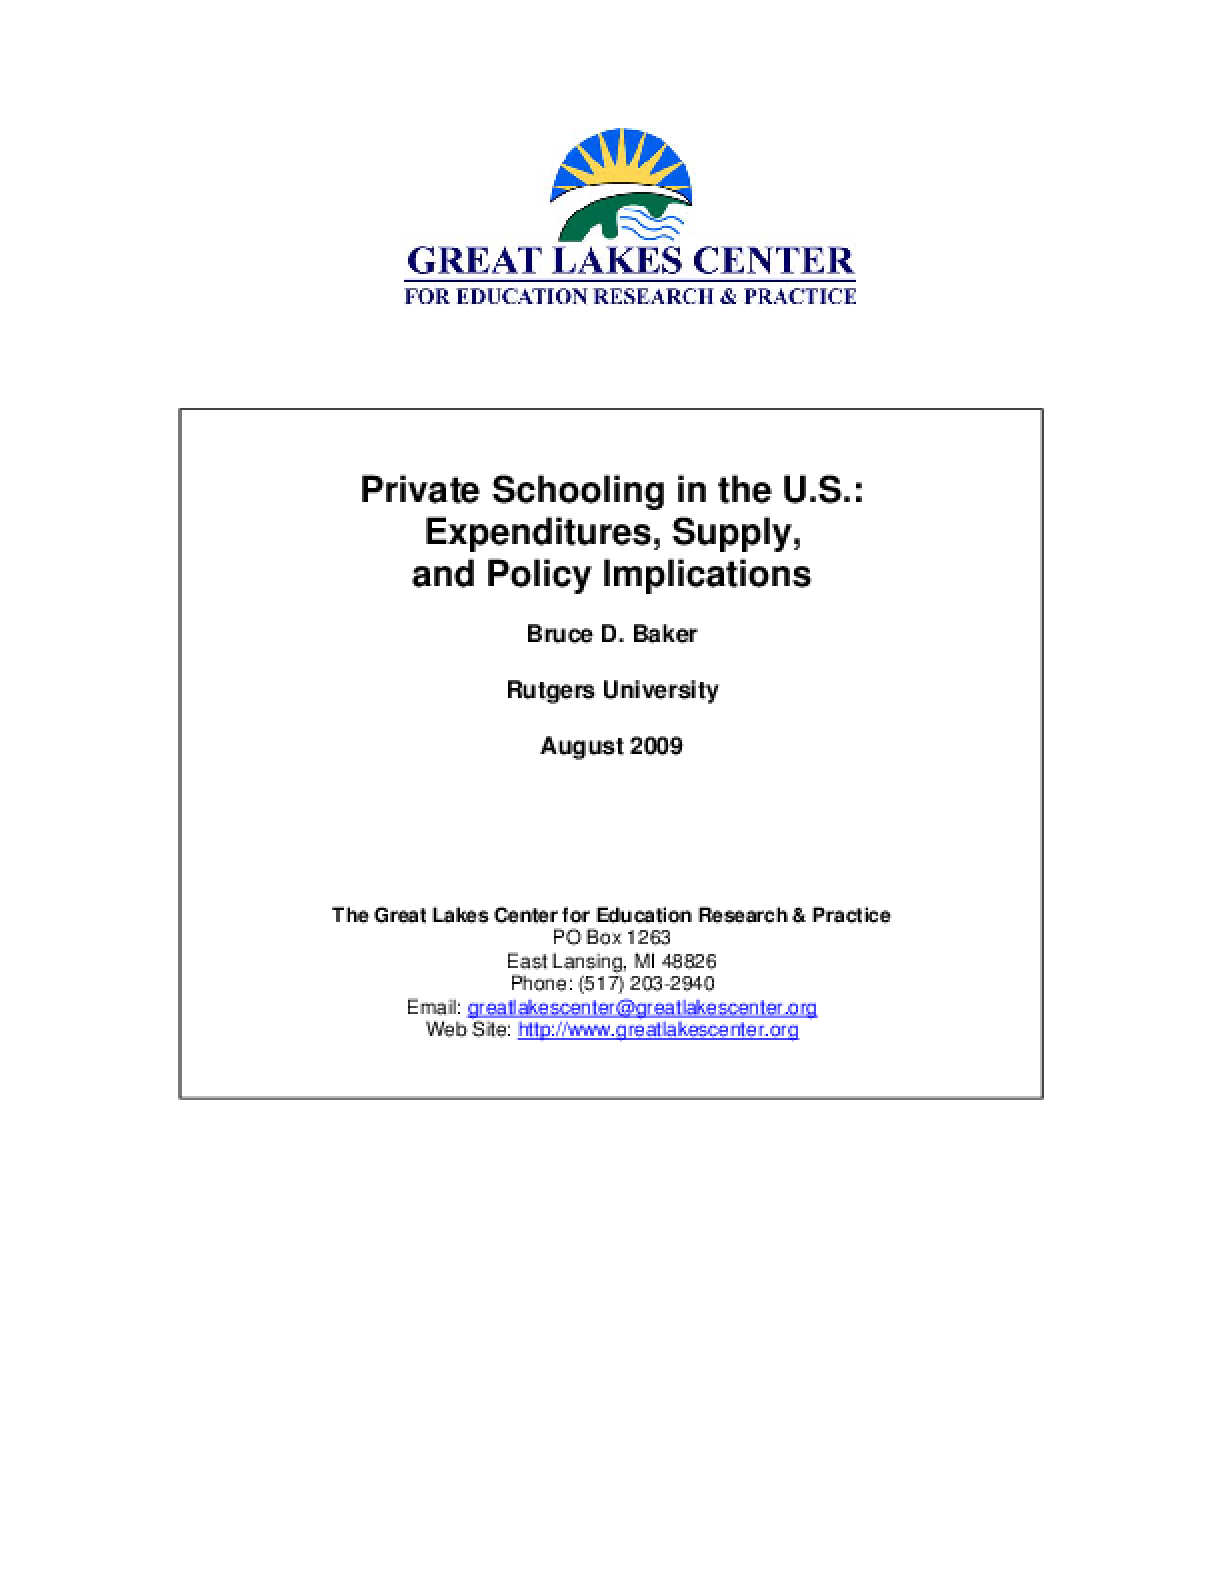 Private Schooling in the U.S.: Expenditures, Supply, and Policy Implications